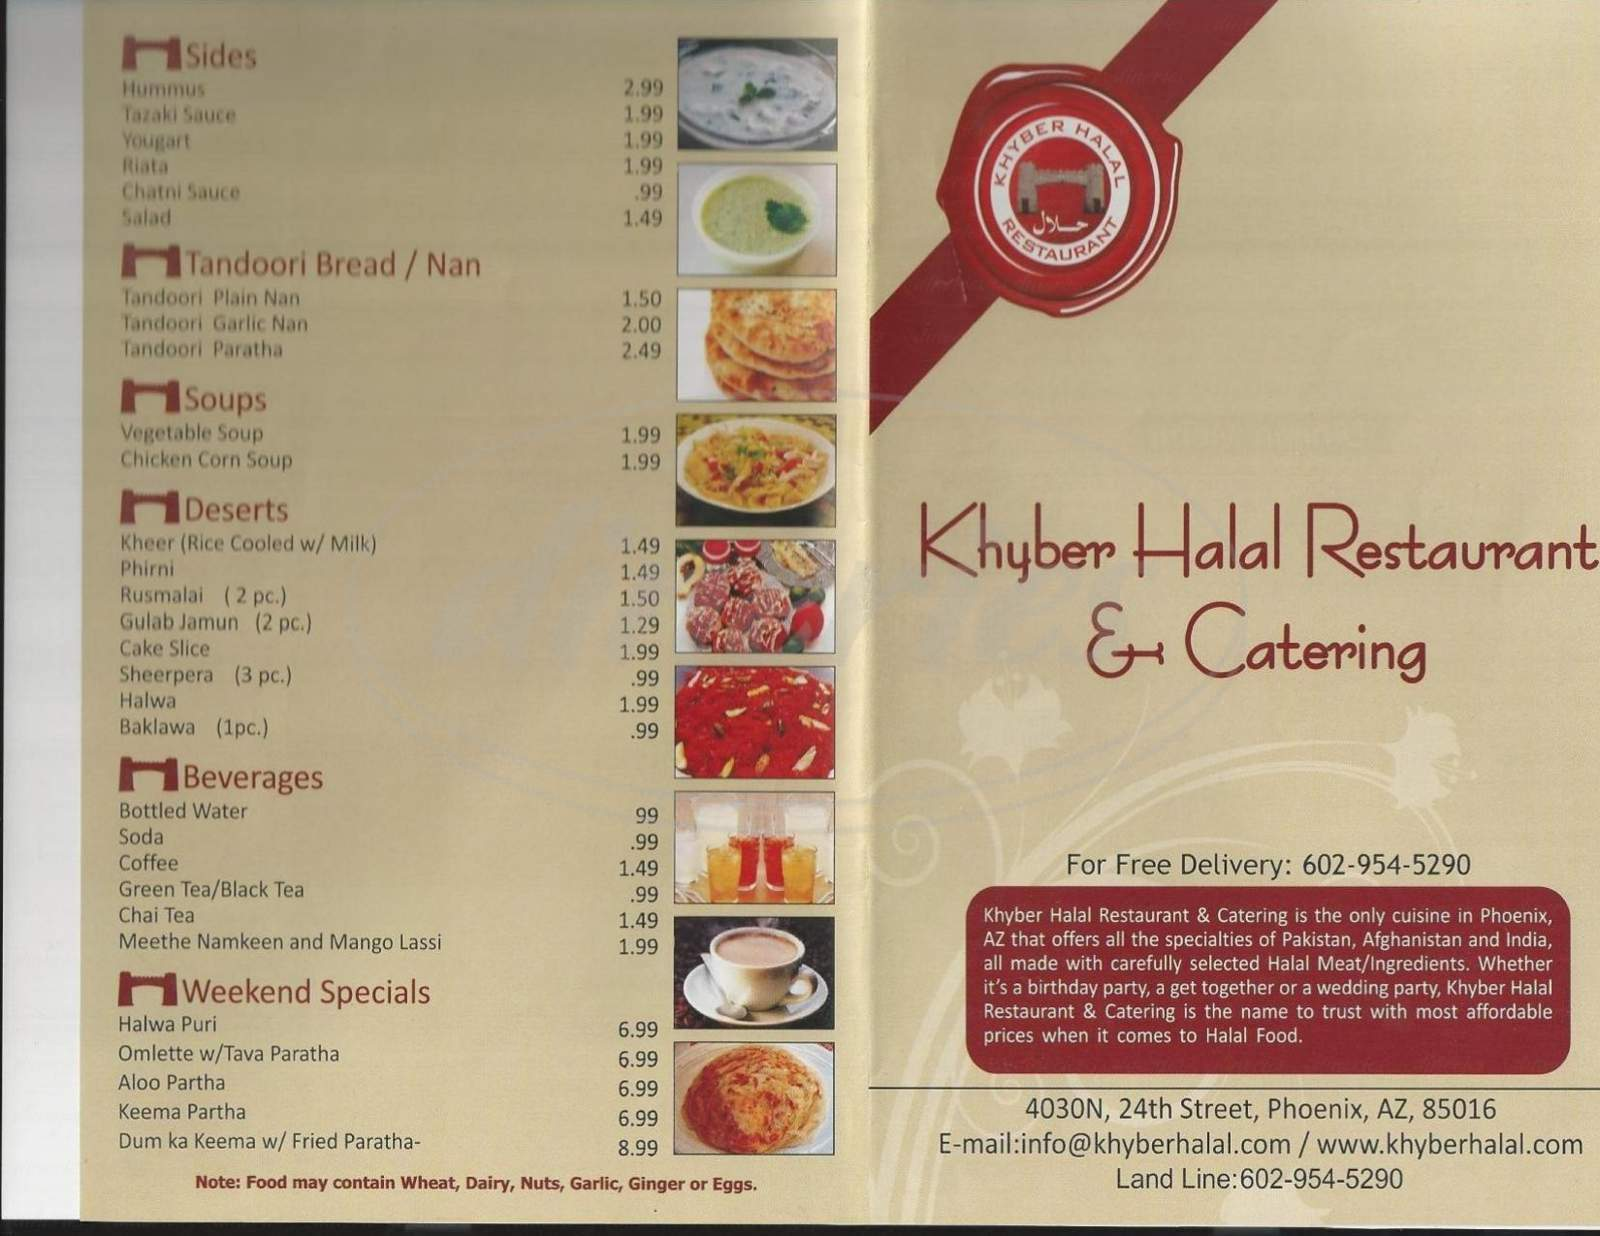 menu for Khyber Halal